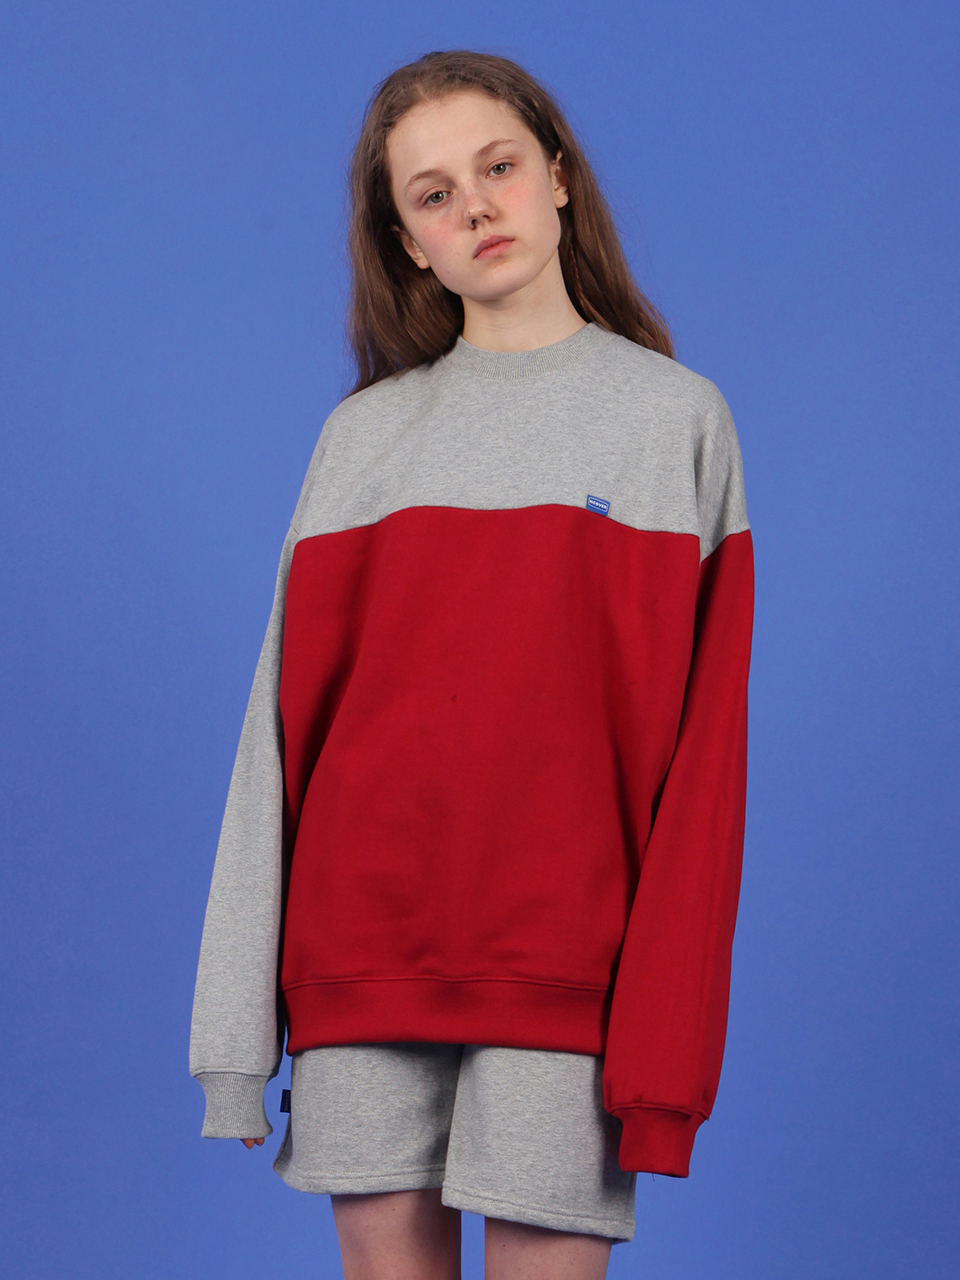 Ncover half color sweatshirt-red